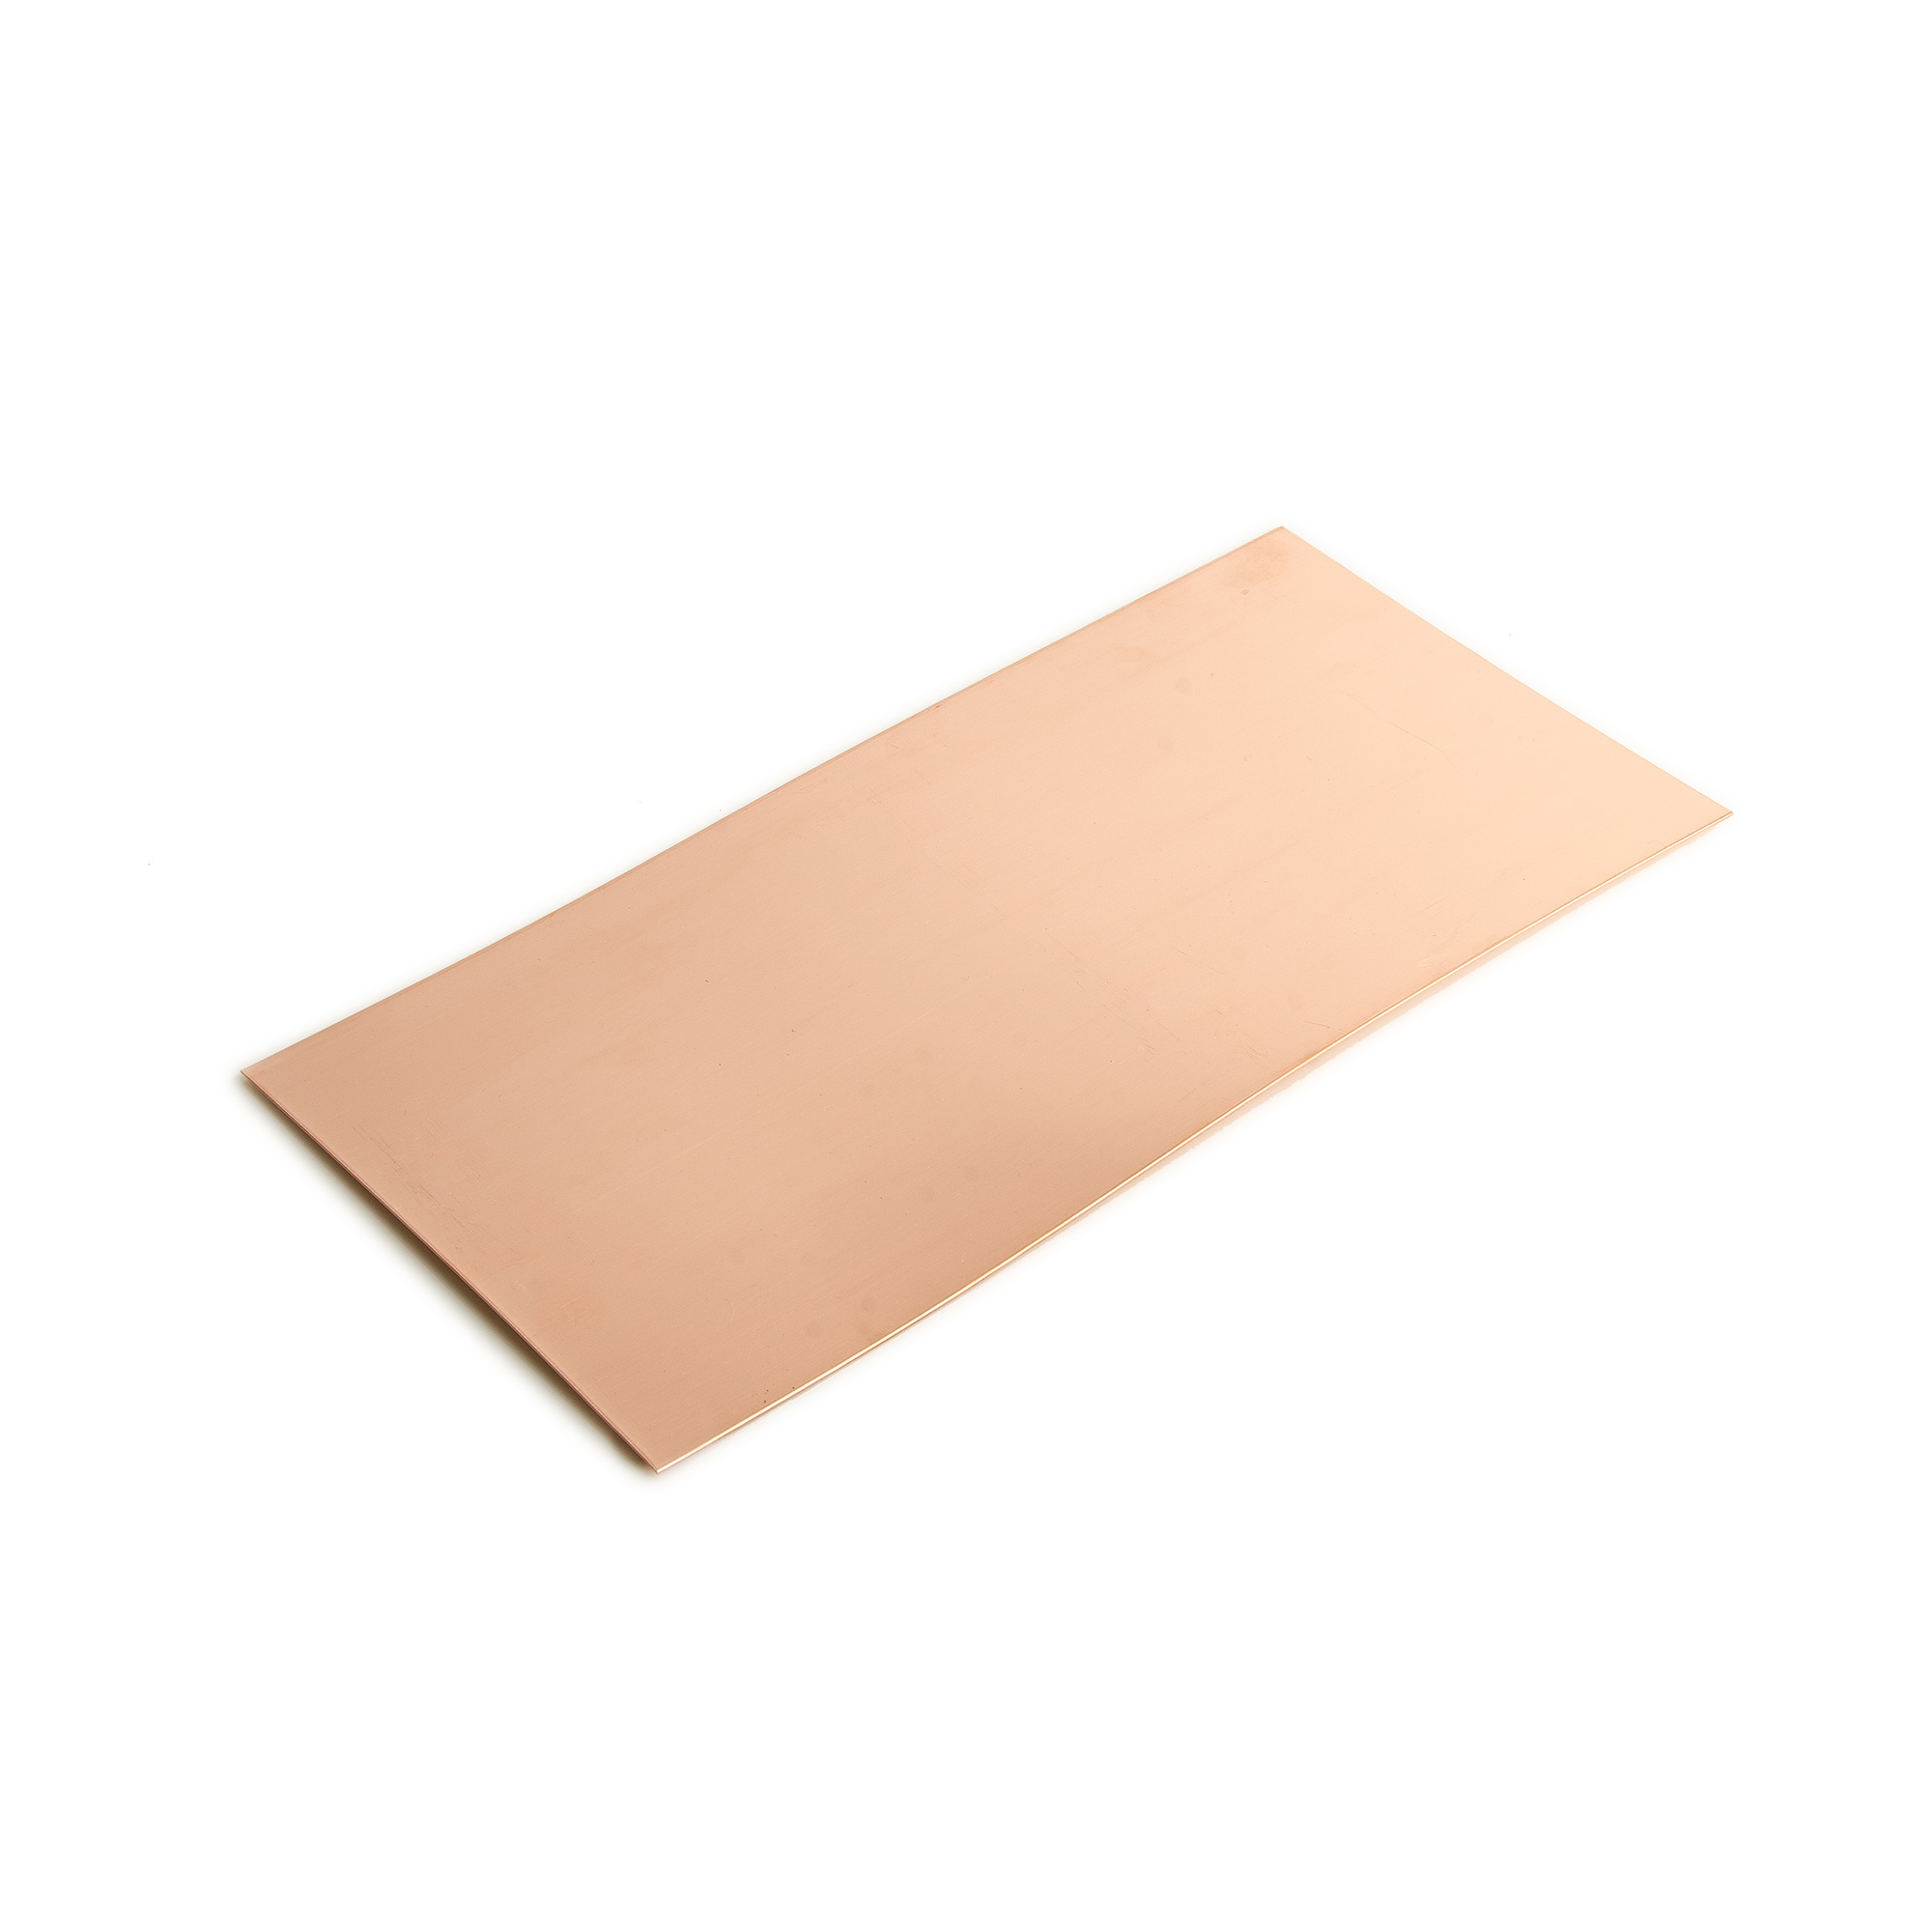 28 Gauge 0.012 Dead Soft Red Tone Red Brass Sheet Metal - 6x12 Inch - Pack of 5